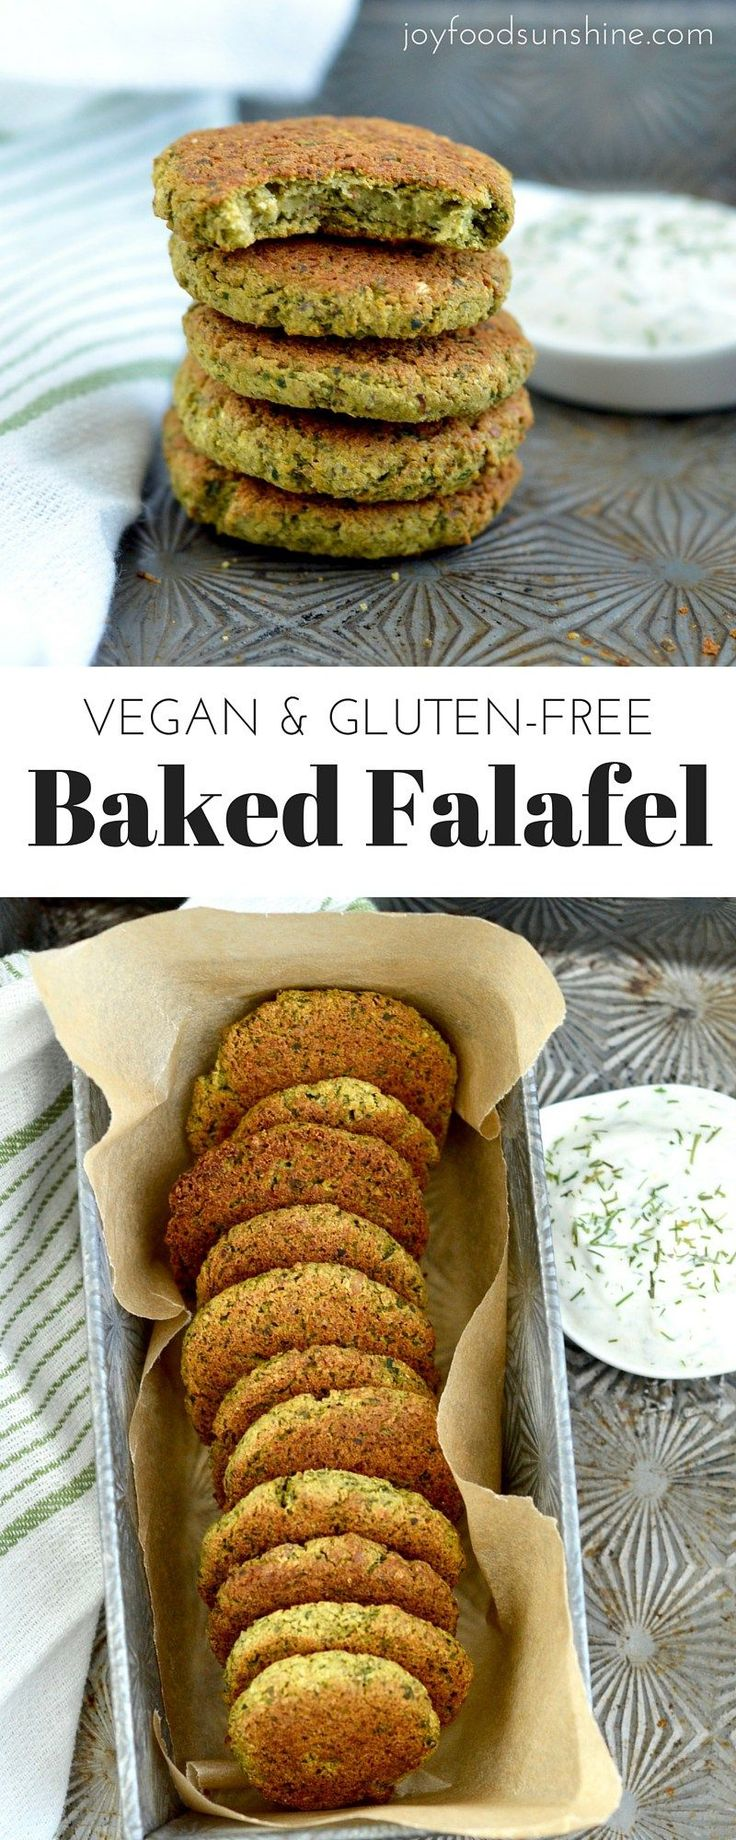 Healthy Gluten-free Baked Falafel Recipe! These delicious falafels are bold and flavorful! They are gluten-free, dairy-free & vegan! An easy meatless dinner recipe that is sure to please the whole family!